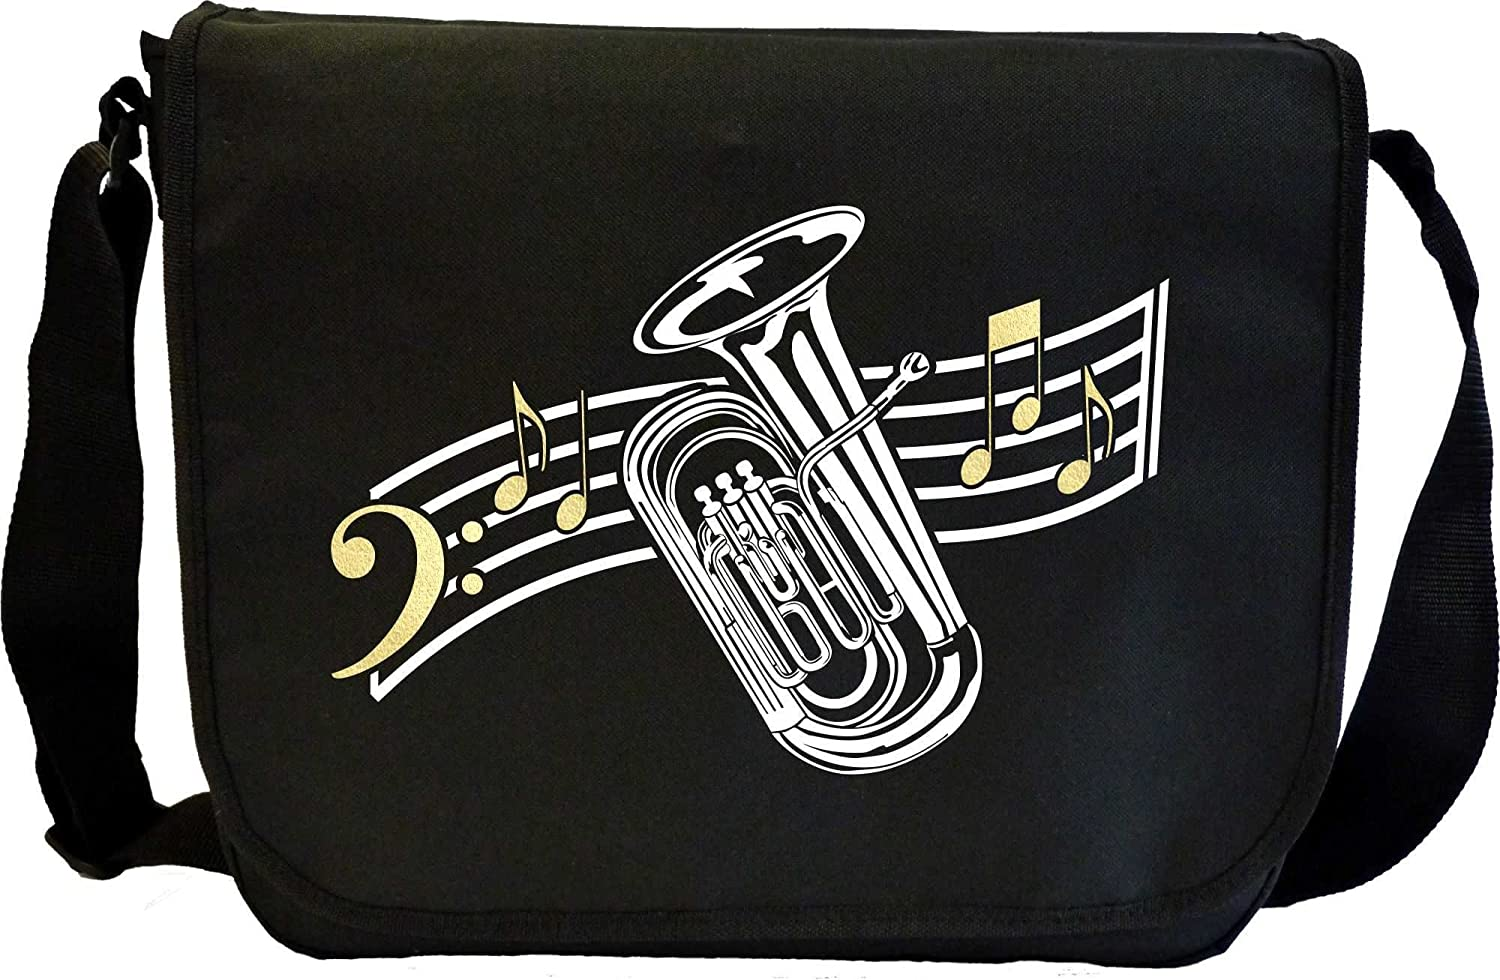 Tuba Curved Stave - Sheet Music Document Bag Sacoche de Musique MusicaliTee Tuba4_53_Stave_Bag_MG